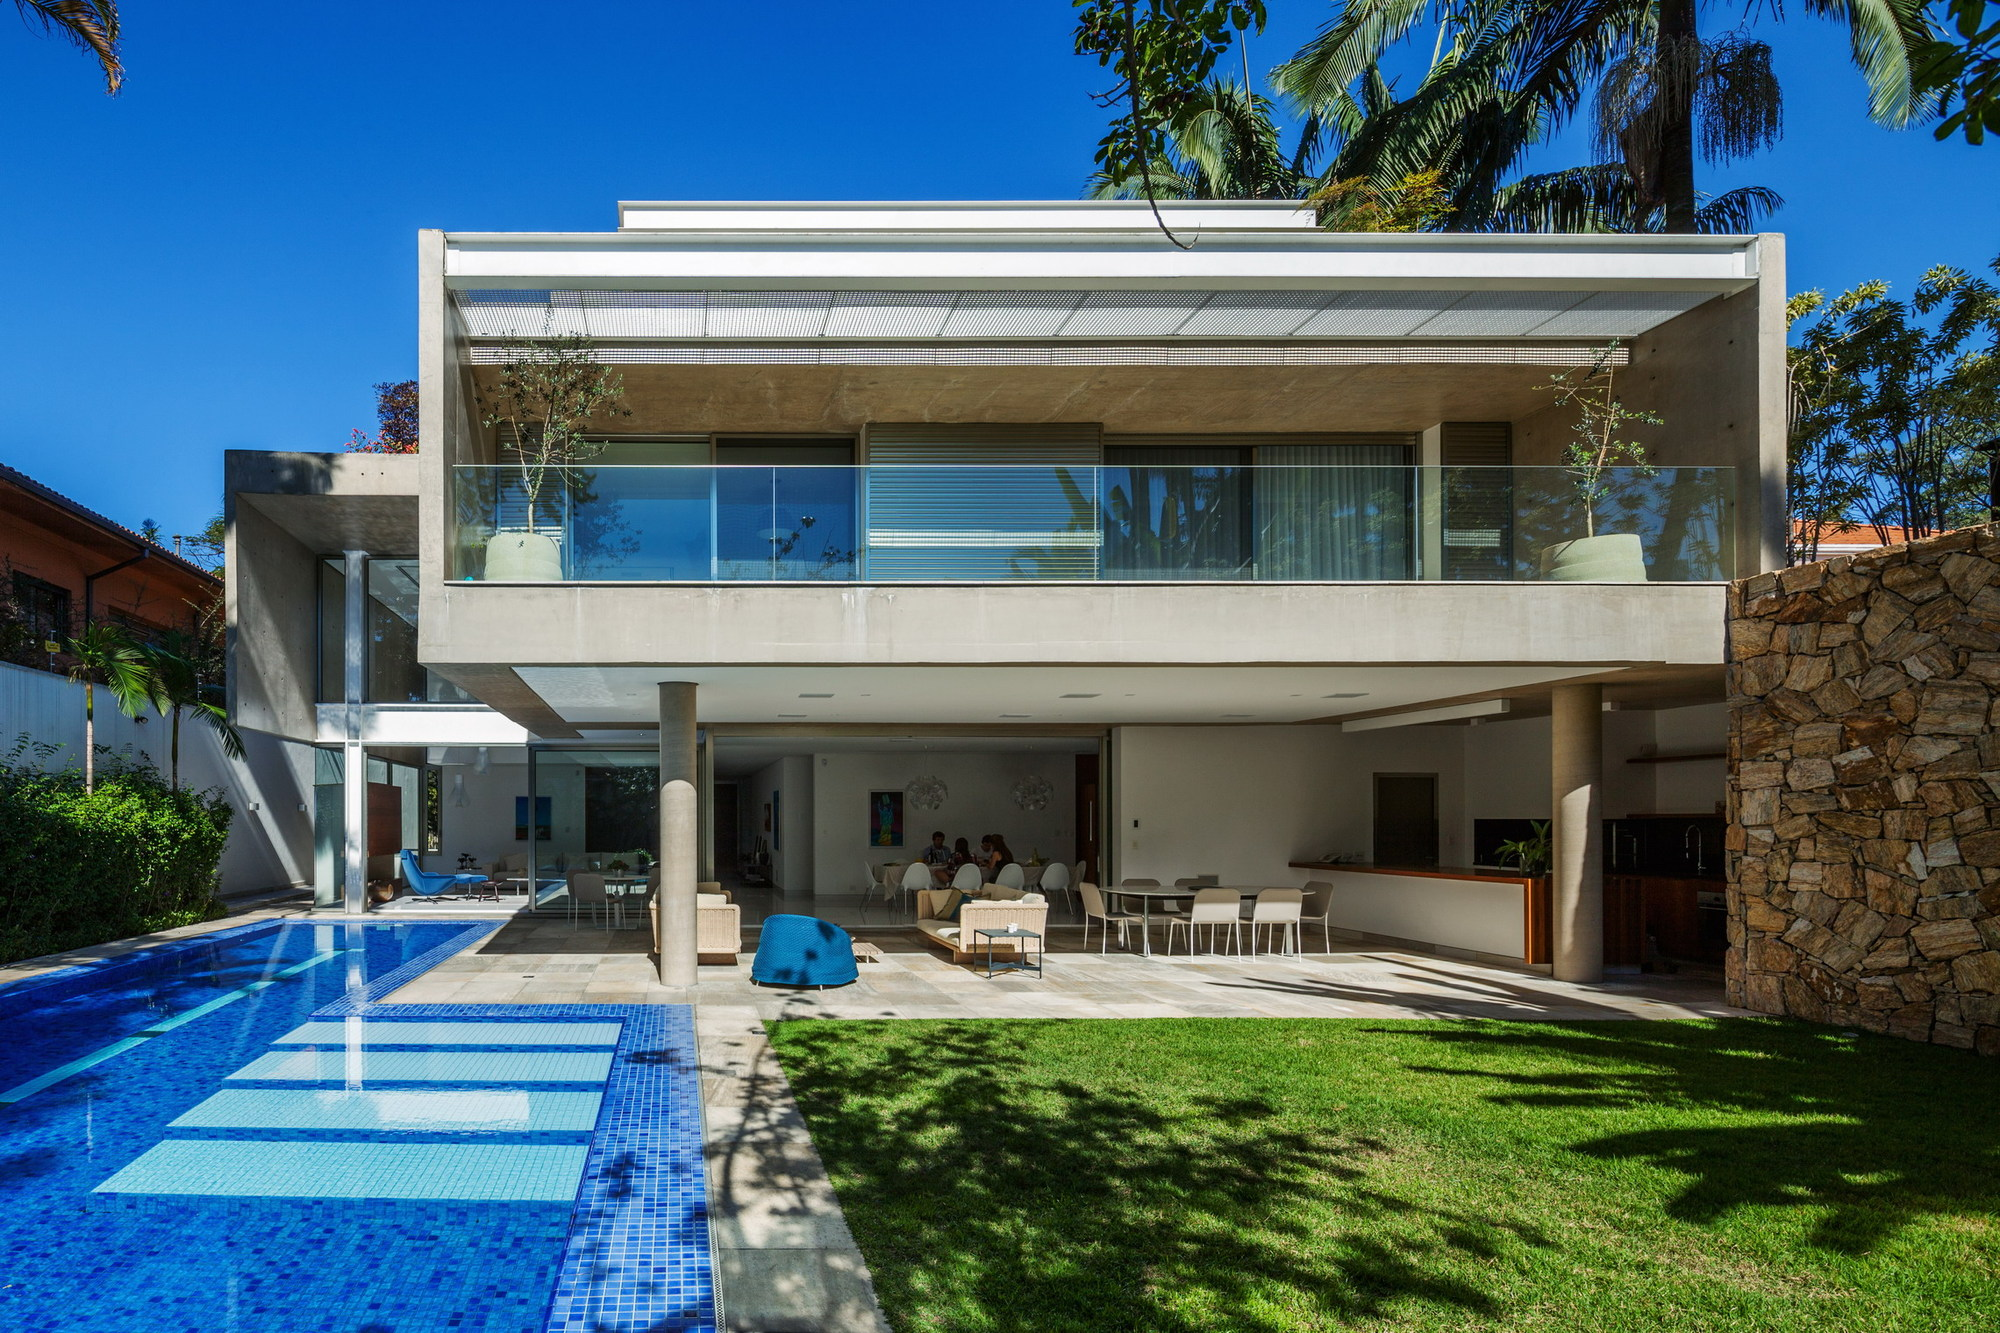 Luxe mg residence in s o paulo brazil for Residence luxe